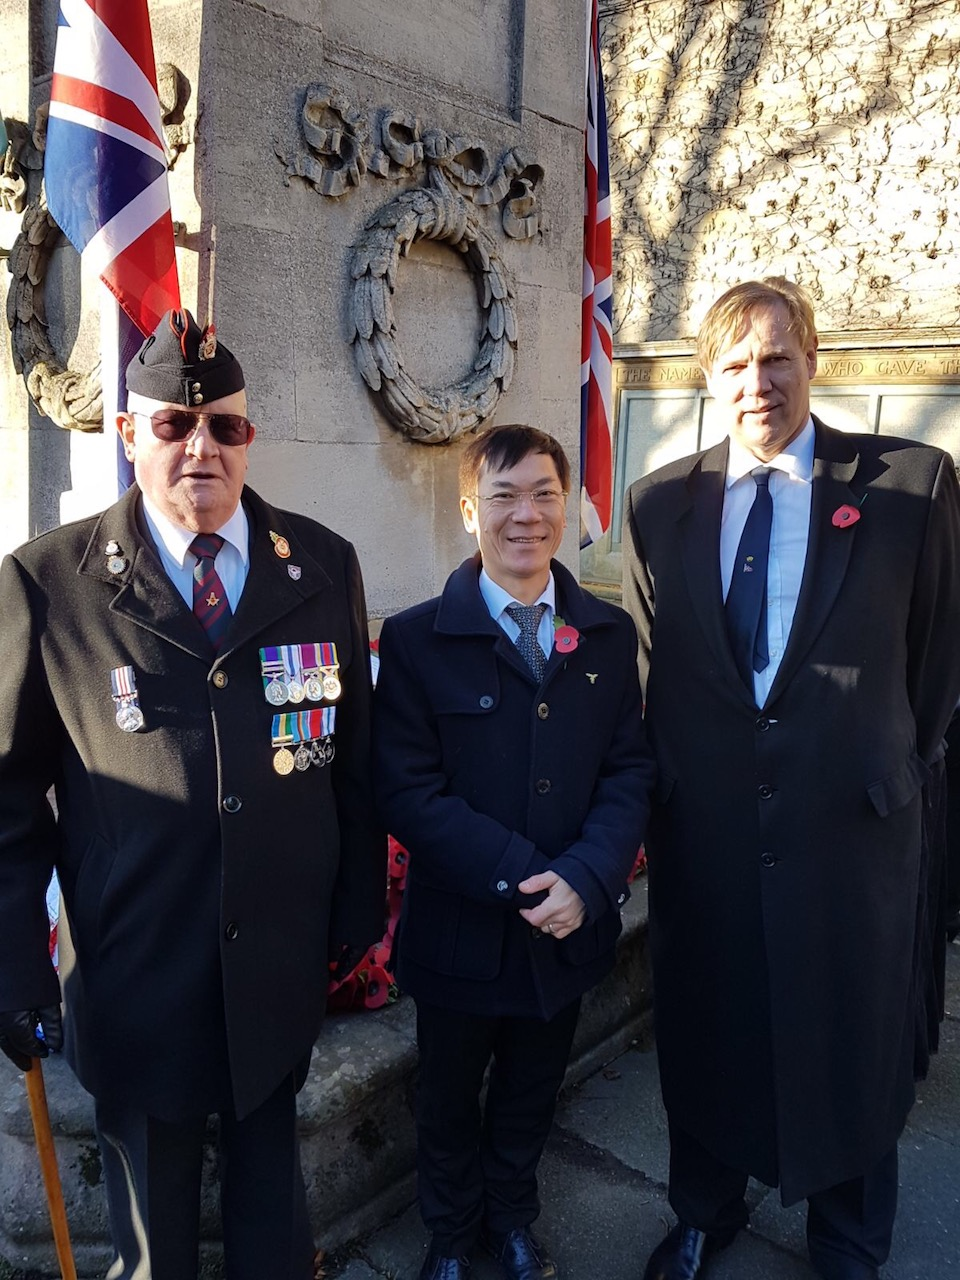 17 11 12 remembrance kettering 4